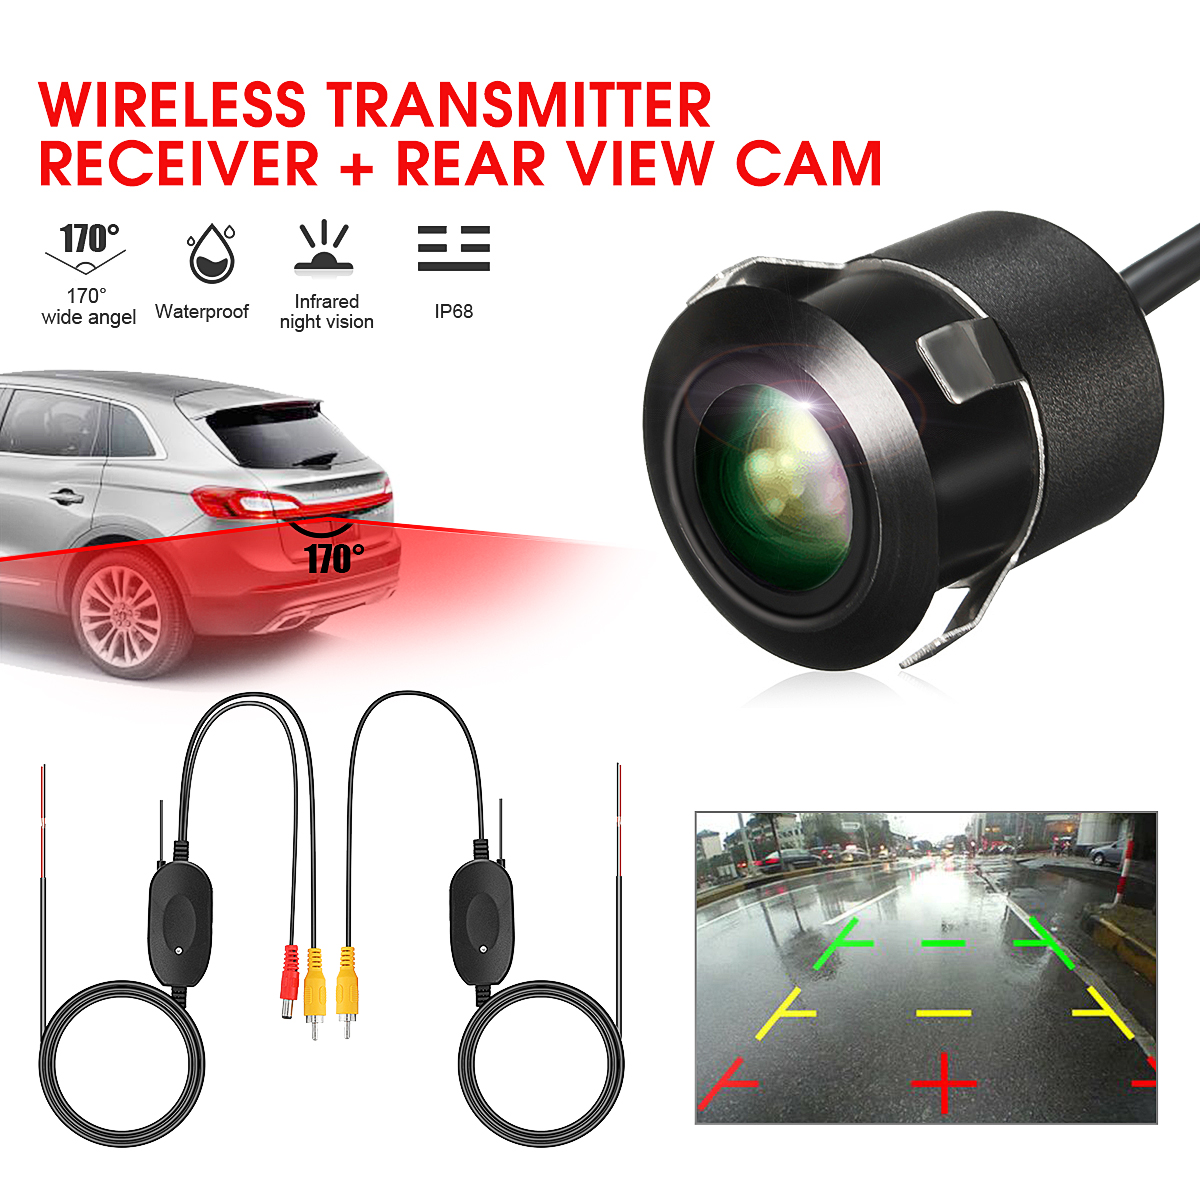 2.4G DC 12V Wireless Rear RCA View Video Transmitter Mini Receiver Backup Car